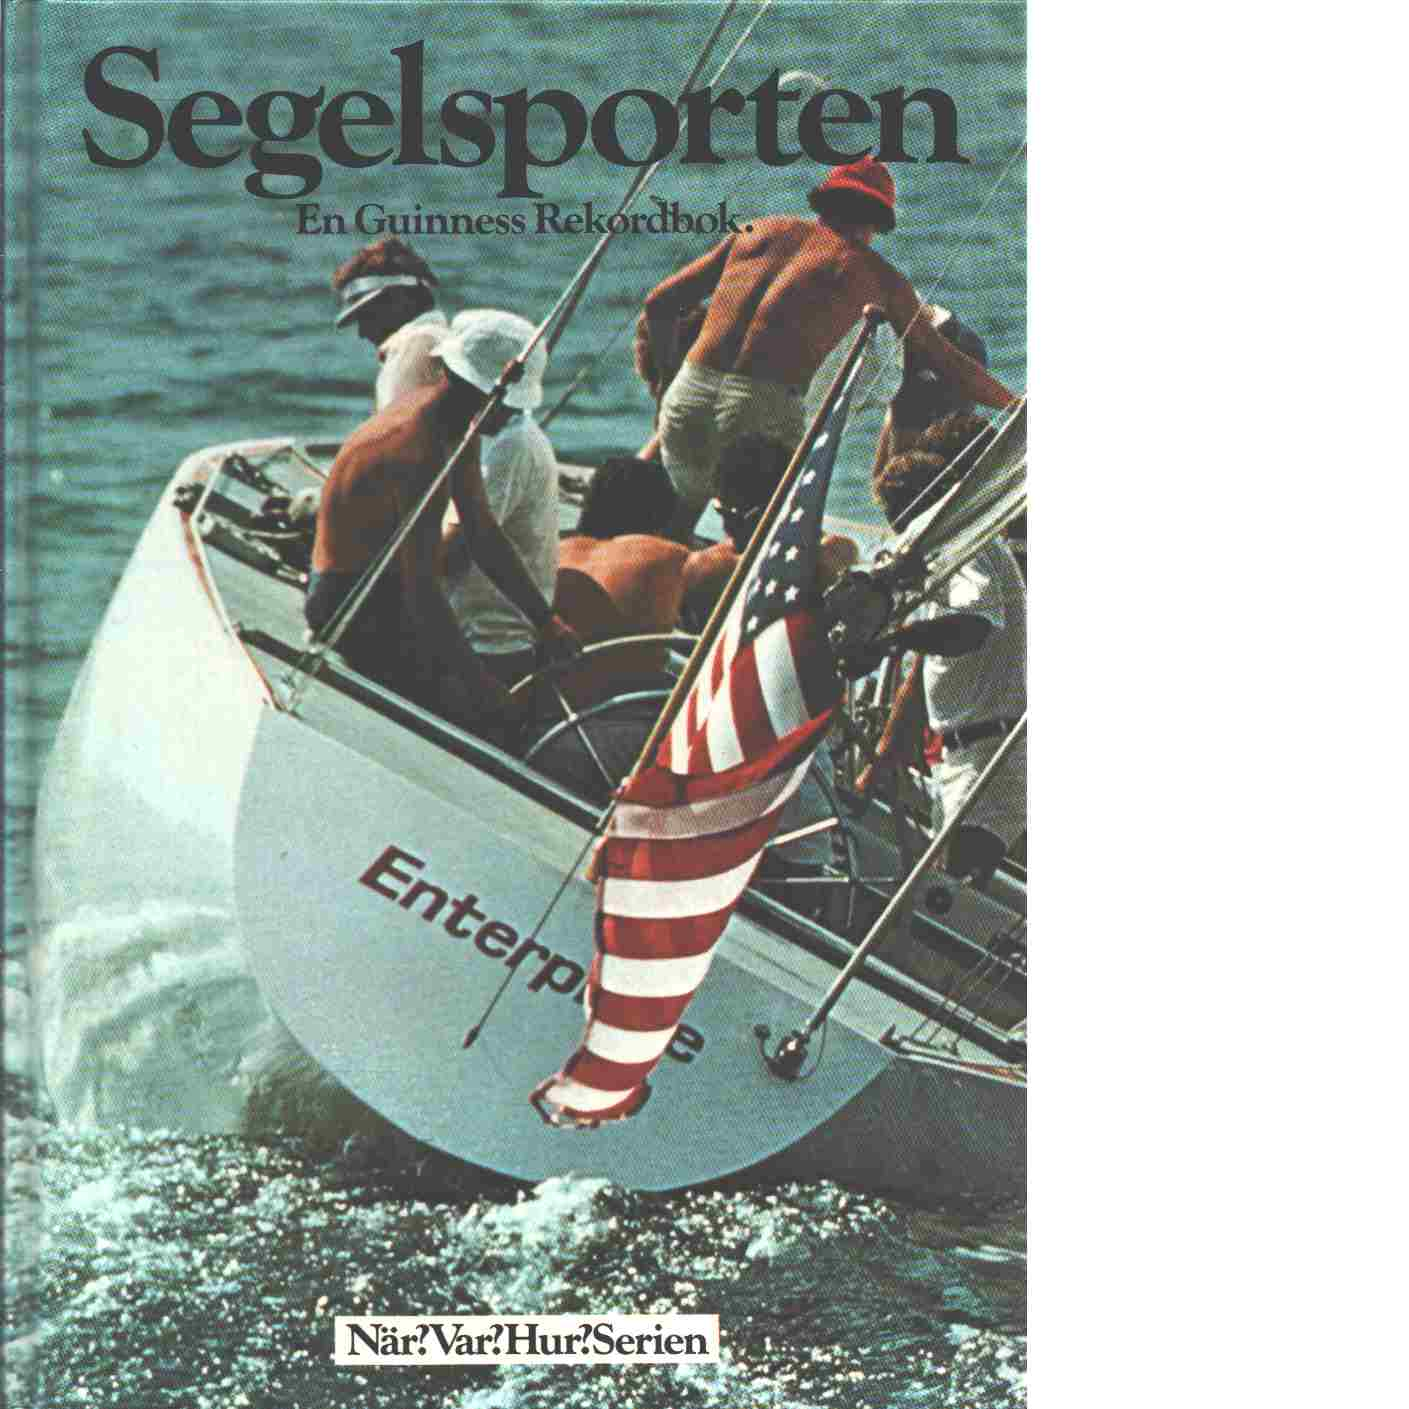 Segelsporten : en Guinness' rekordbok - Johnson, Peter